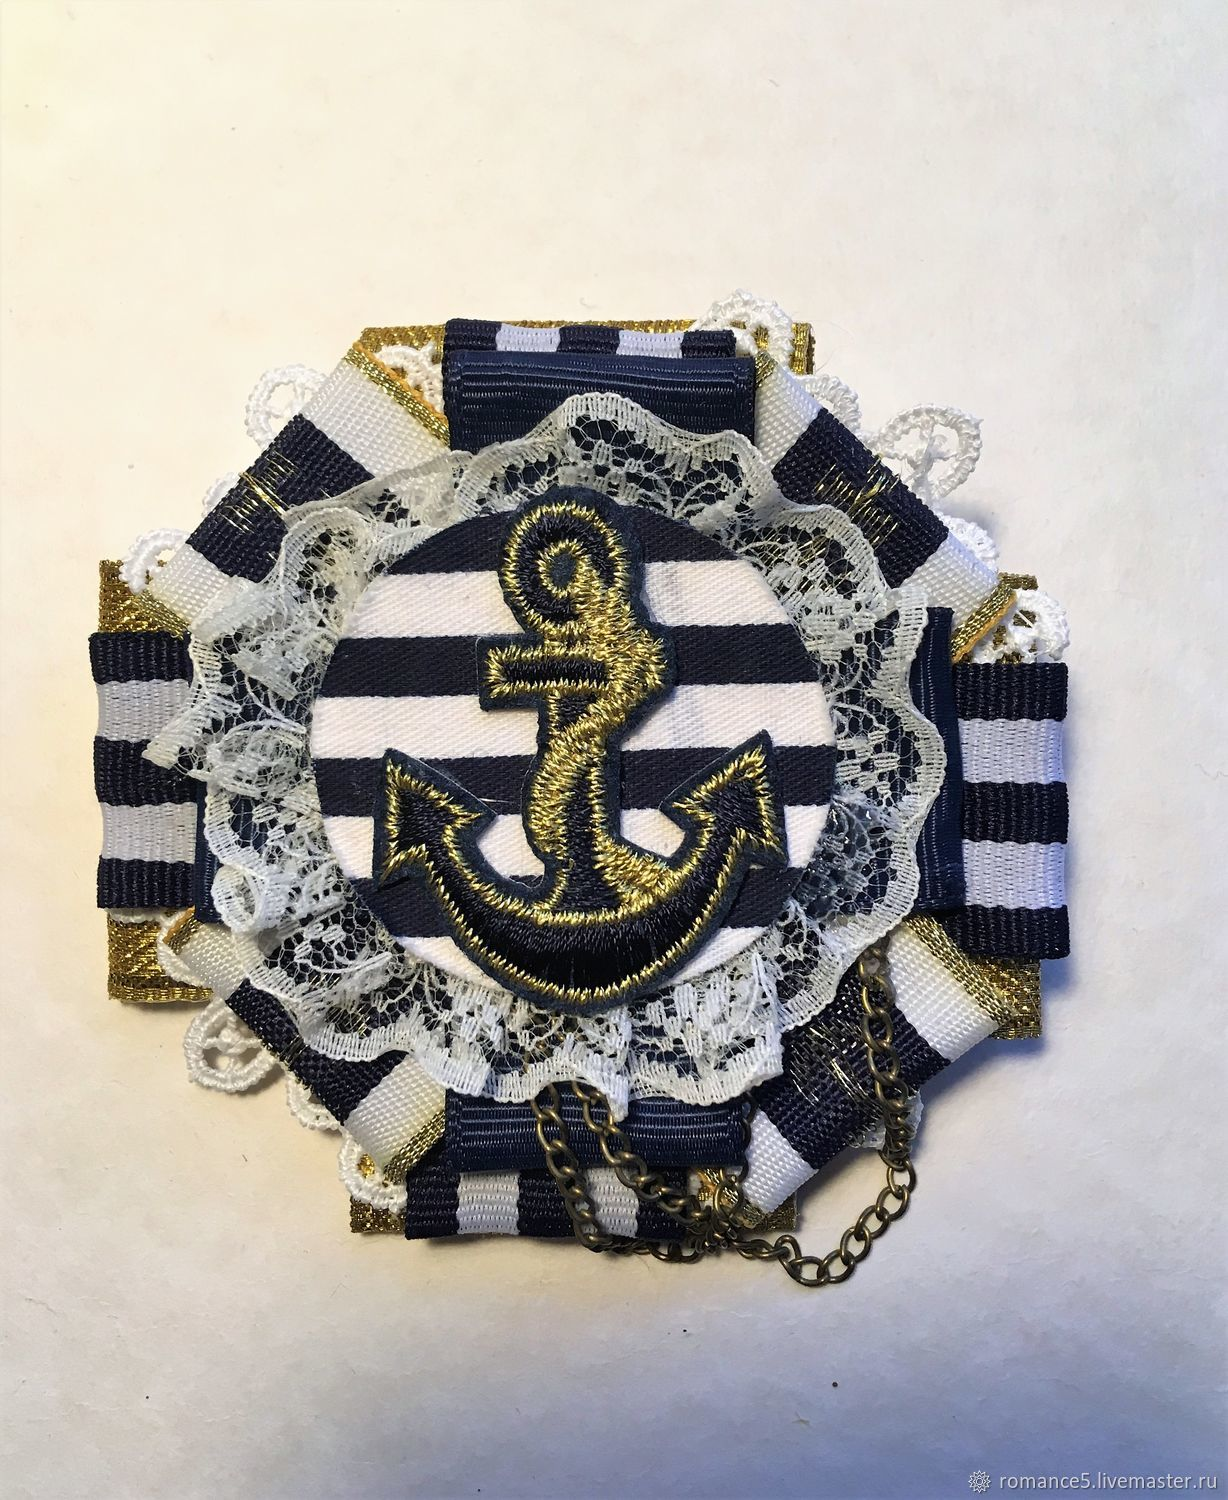 Marine brooch from reps tapes 'Miami beach', Brooches, Moscow,  Фото №1